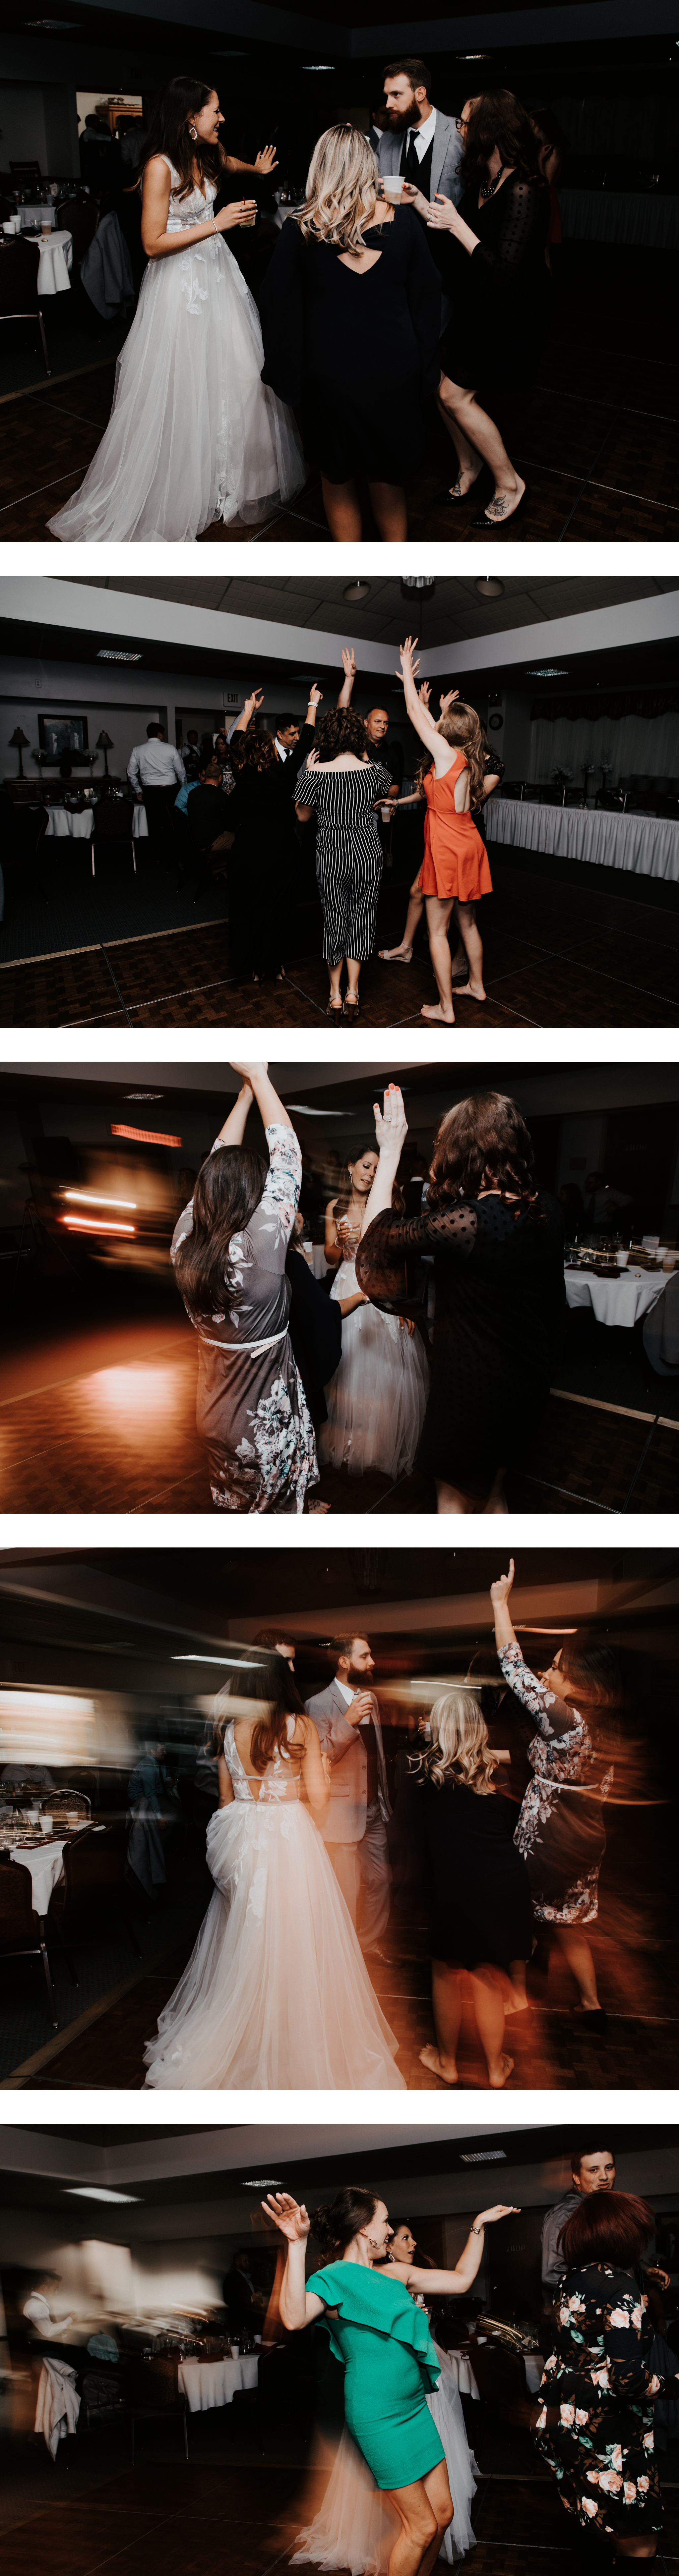 The Pollack Wedding 24.jpg